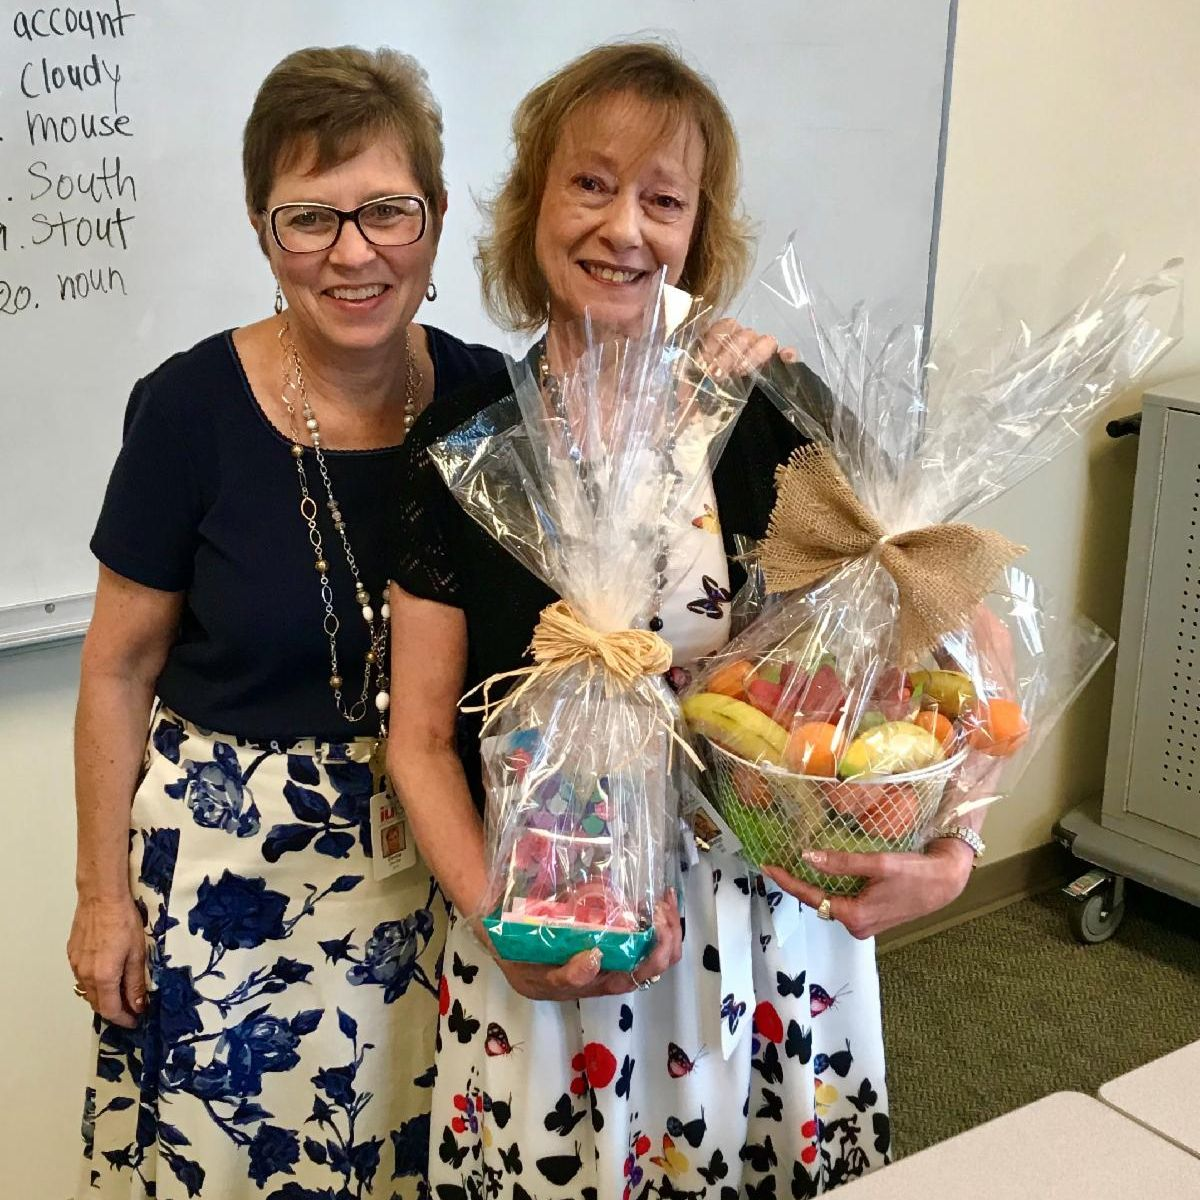 Two women smiling and holding gift baskets